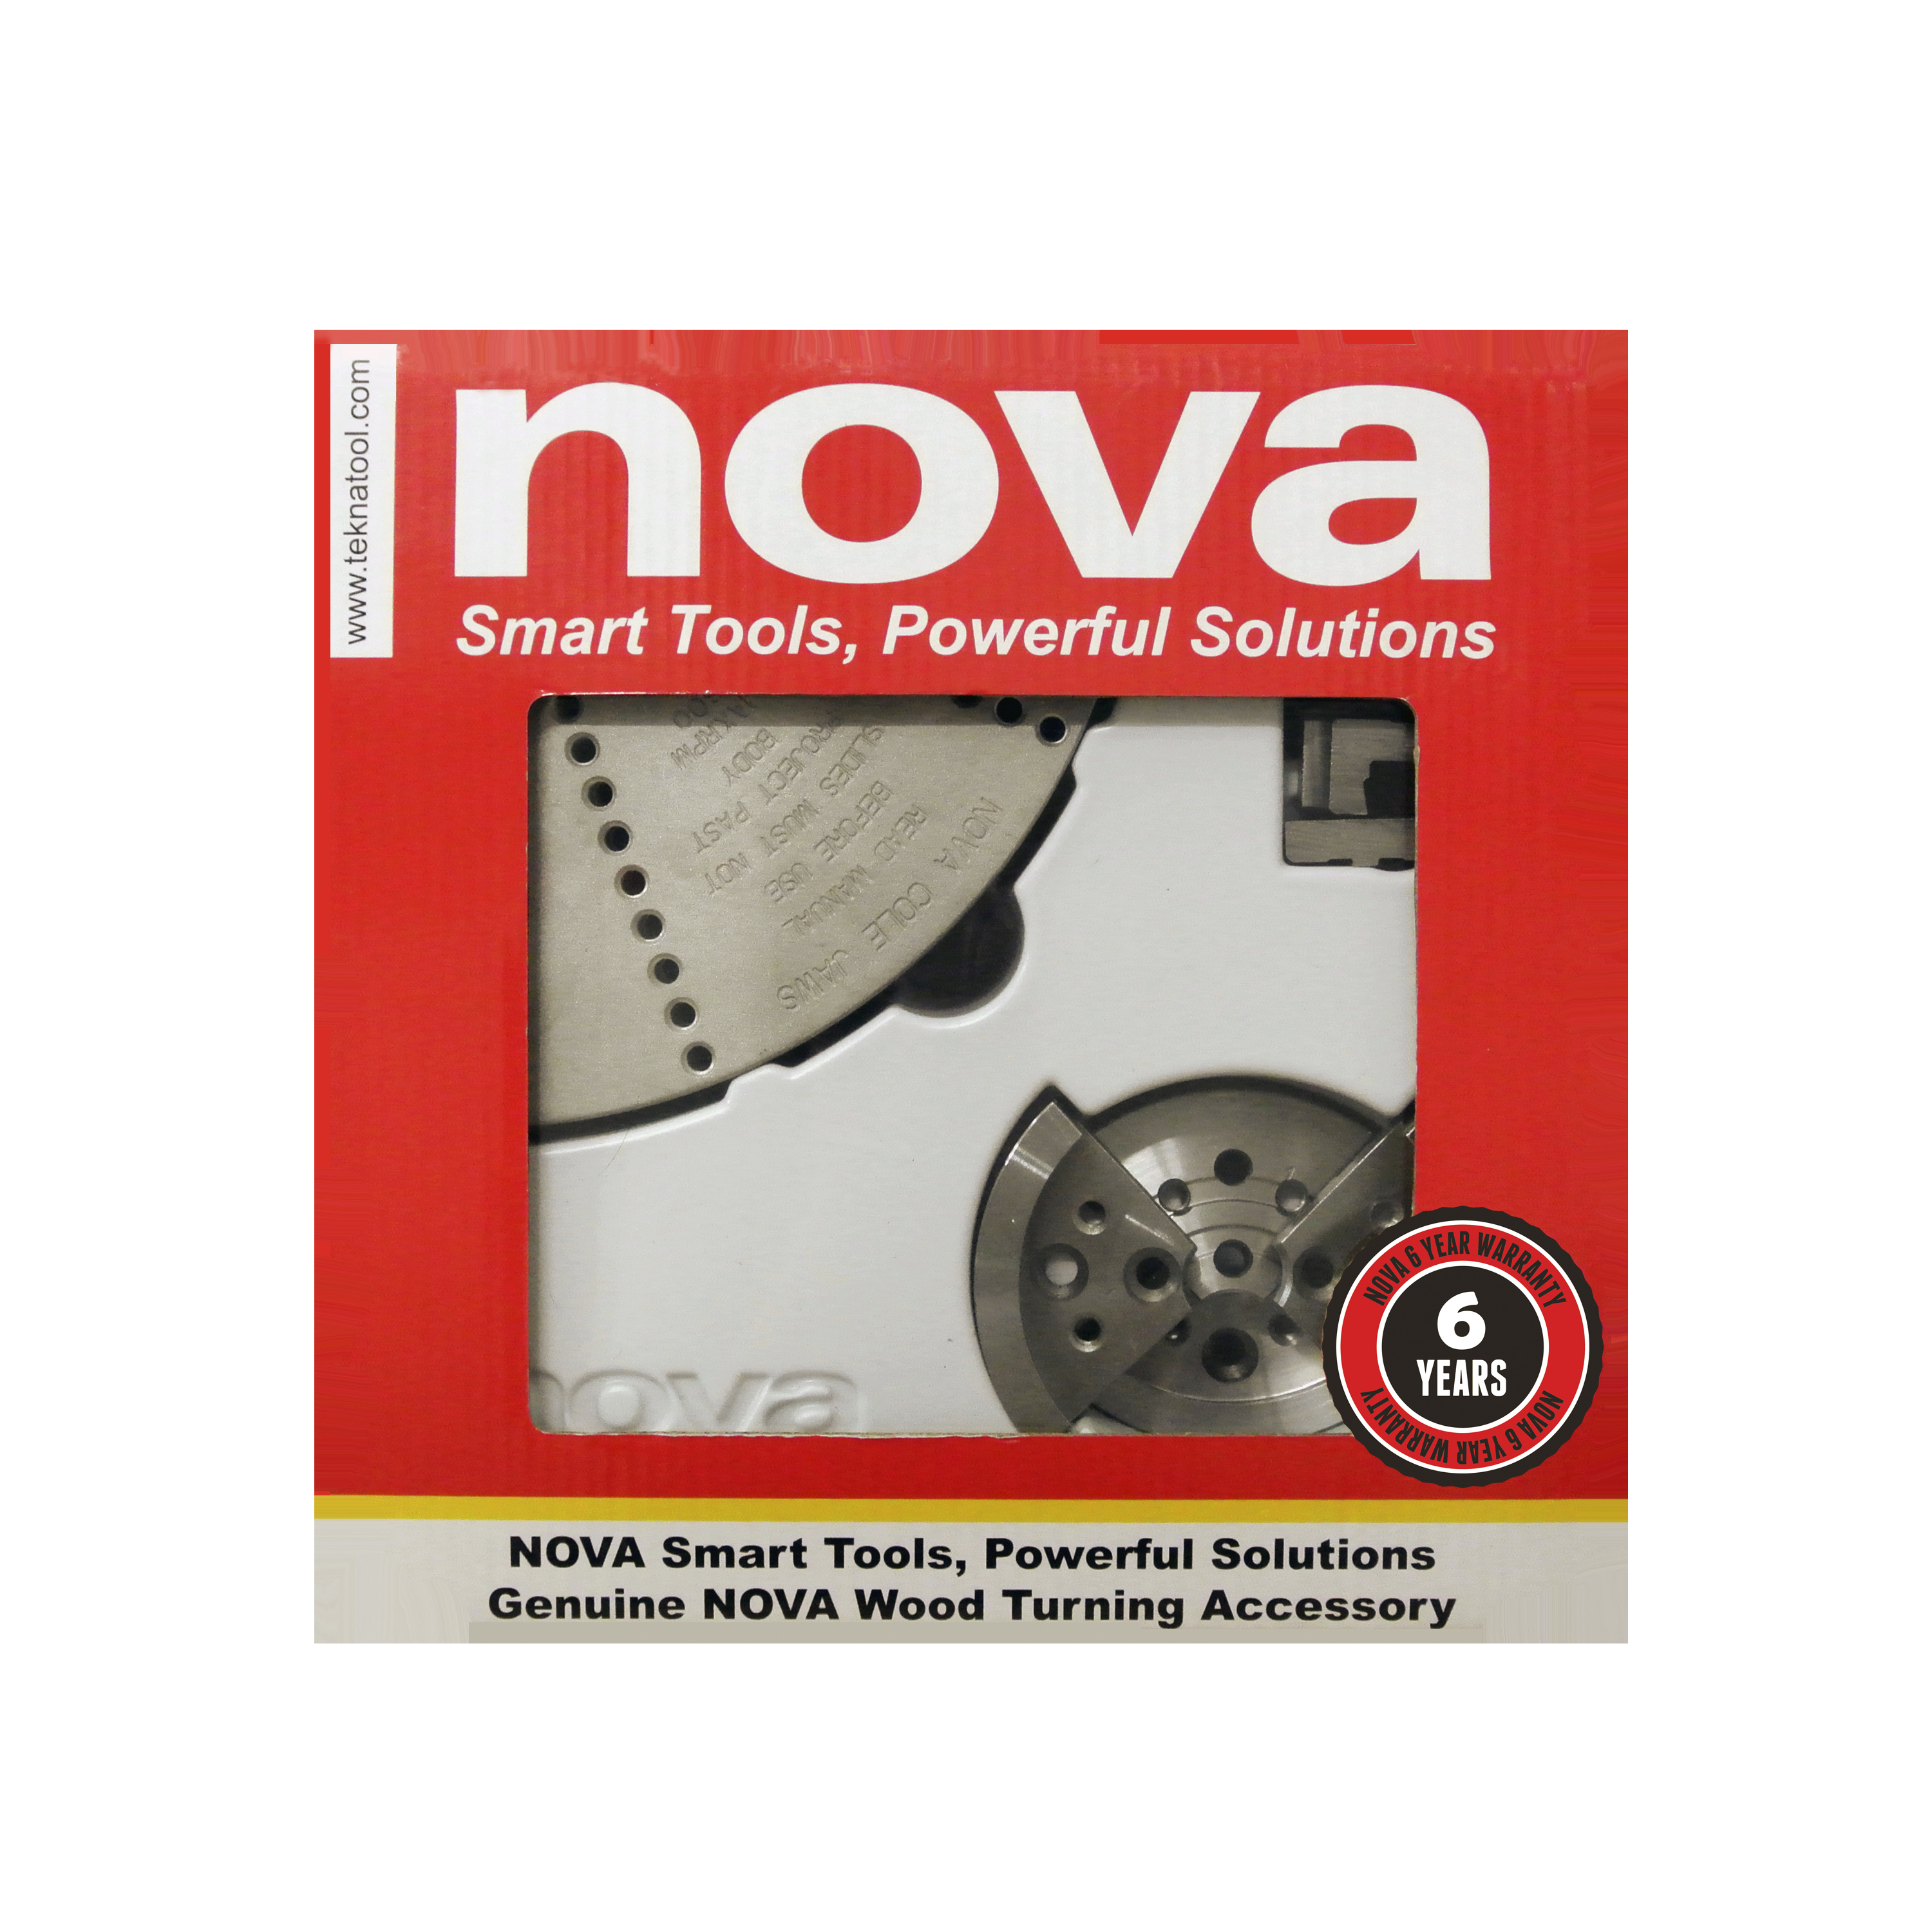 Nova 6033 Popular Jaw Assortment Bundle (Includes JS25N, JS100N, & JSCOLE)